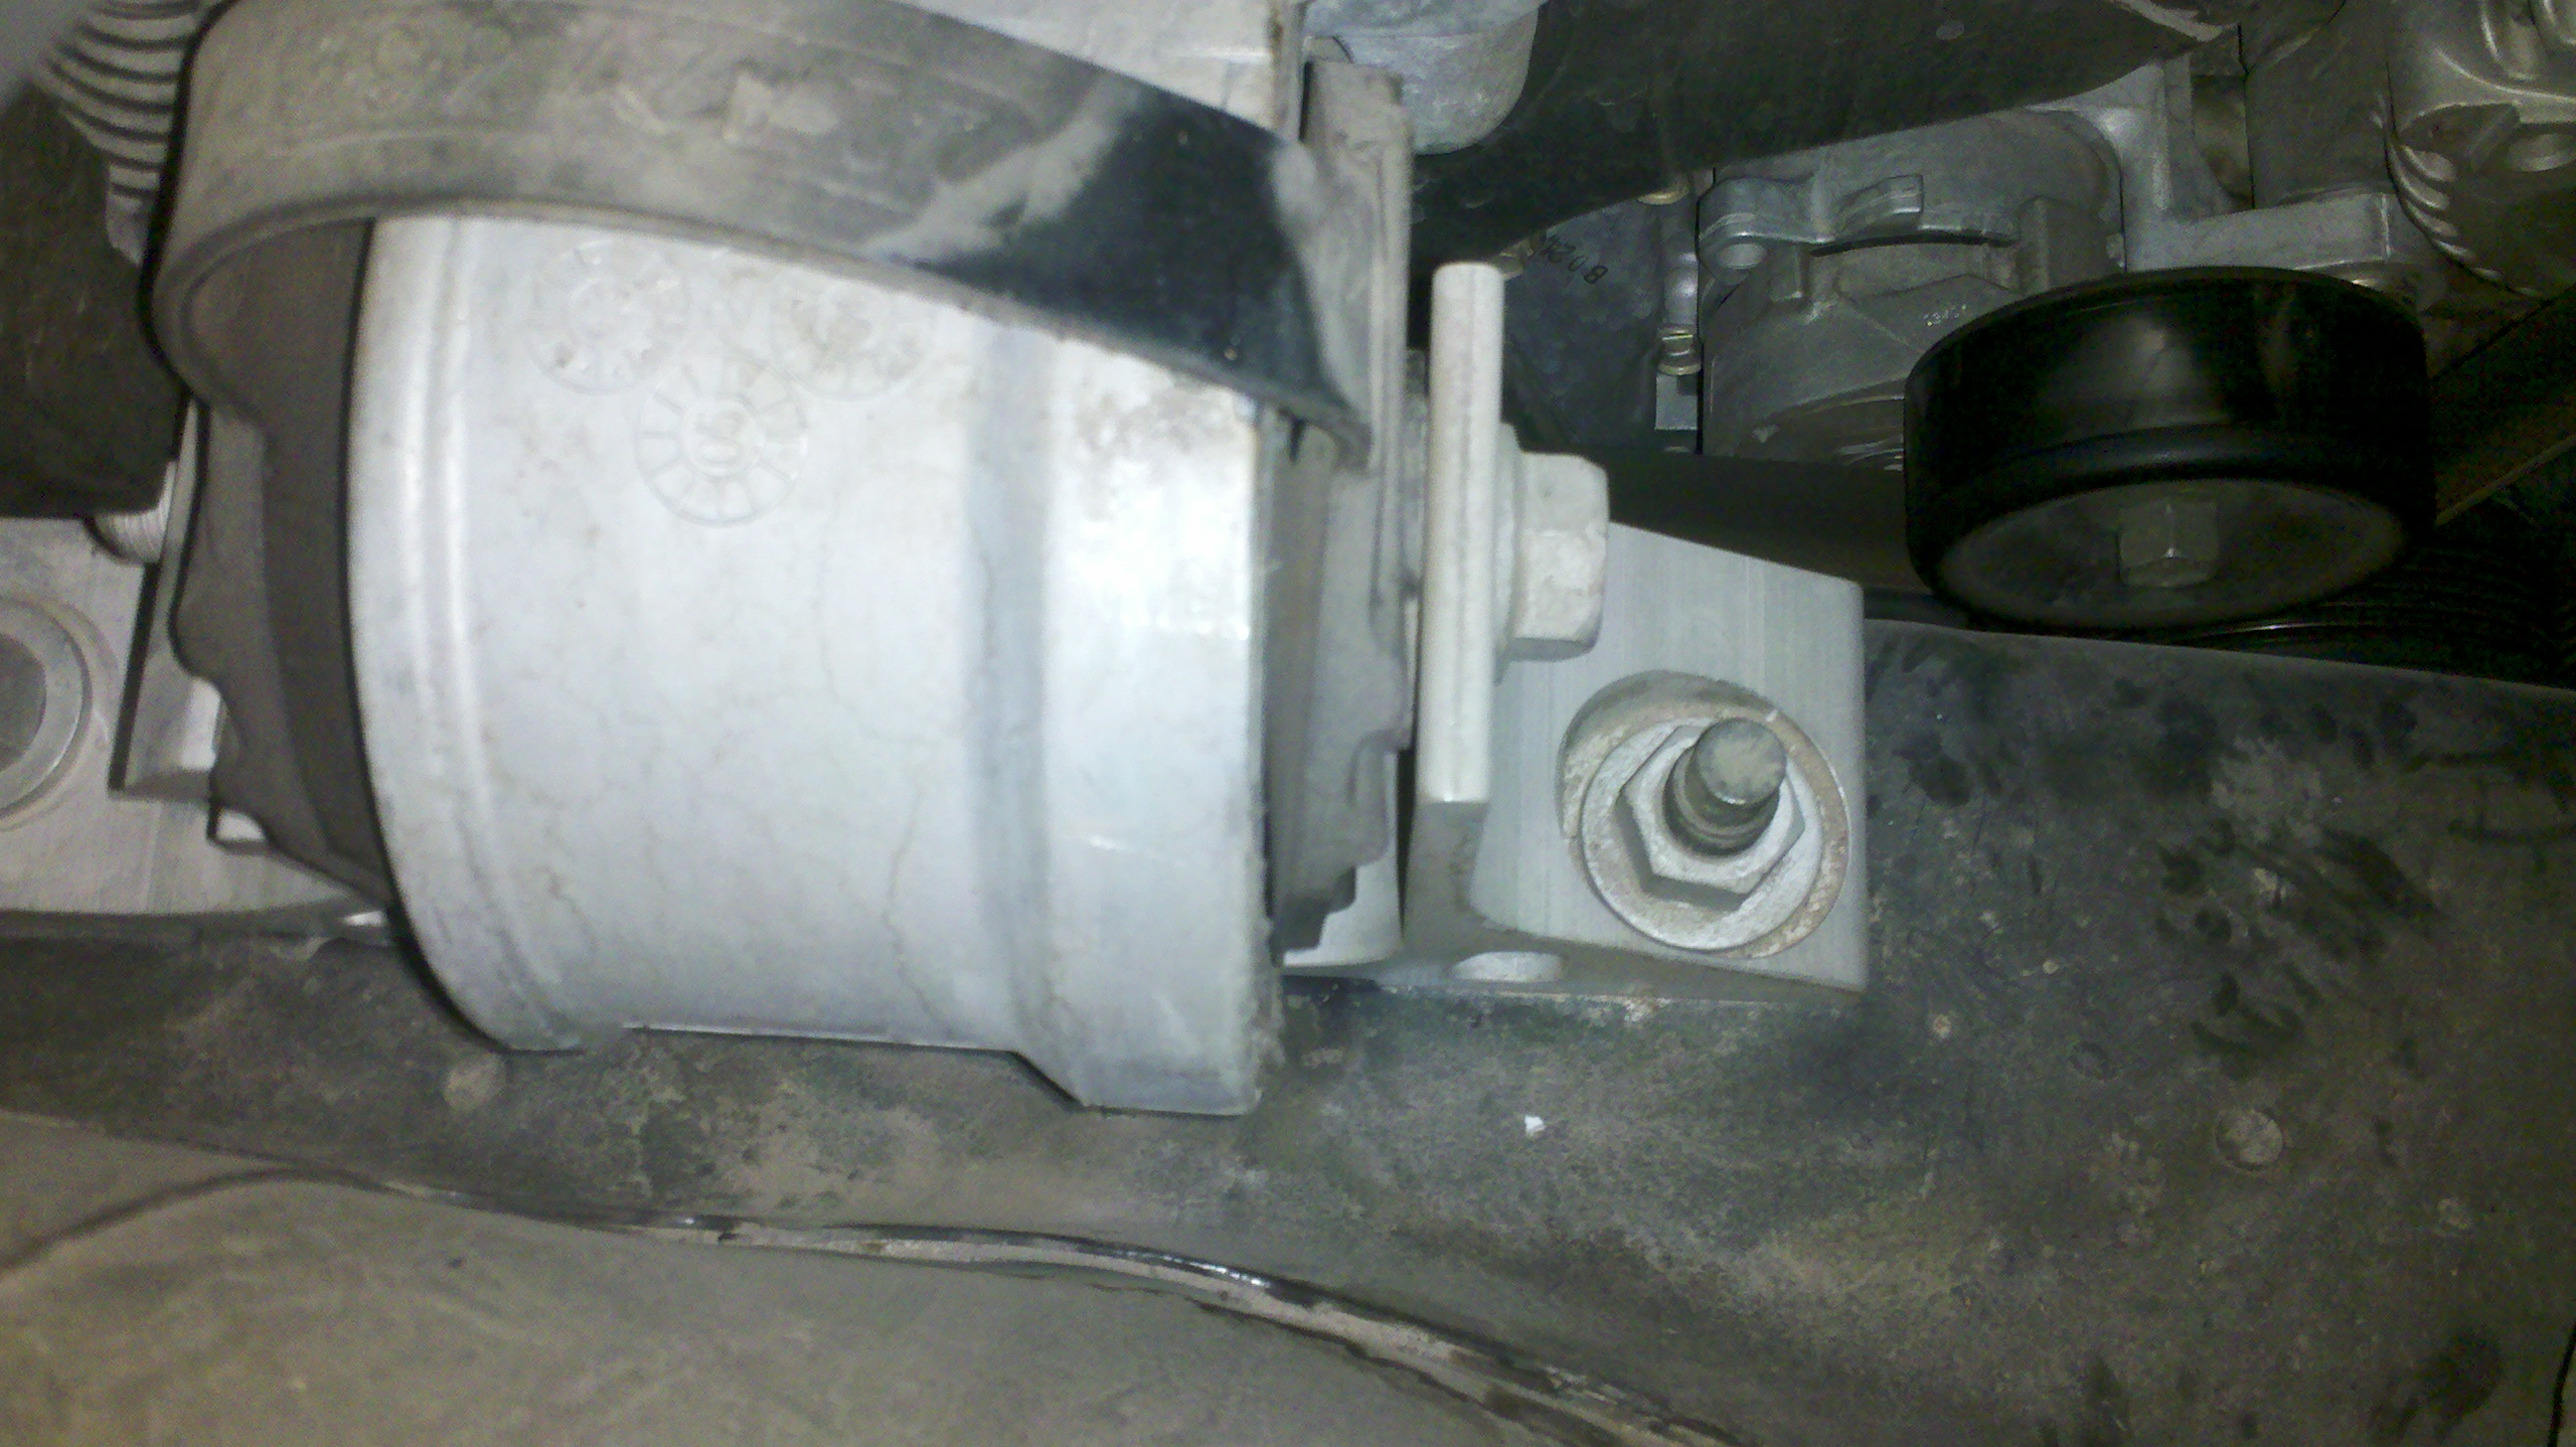 2004 Saturn Vue 3.5L - I have a weird knocking somewhere on the right side of my engine... It ...